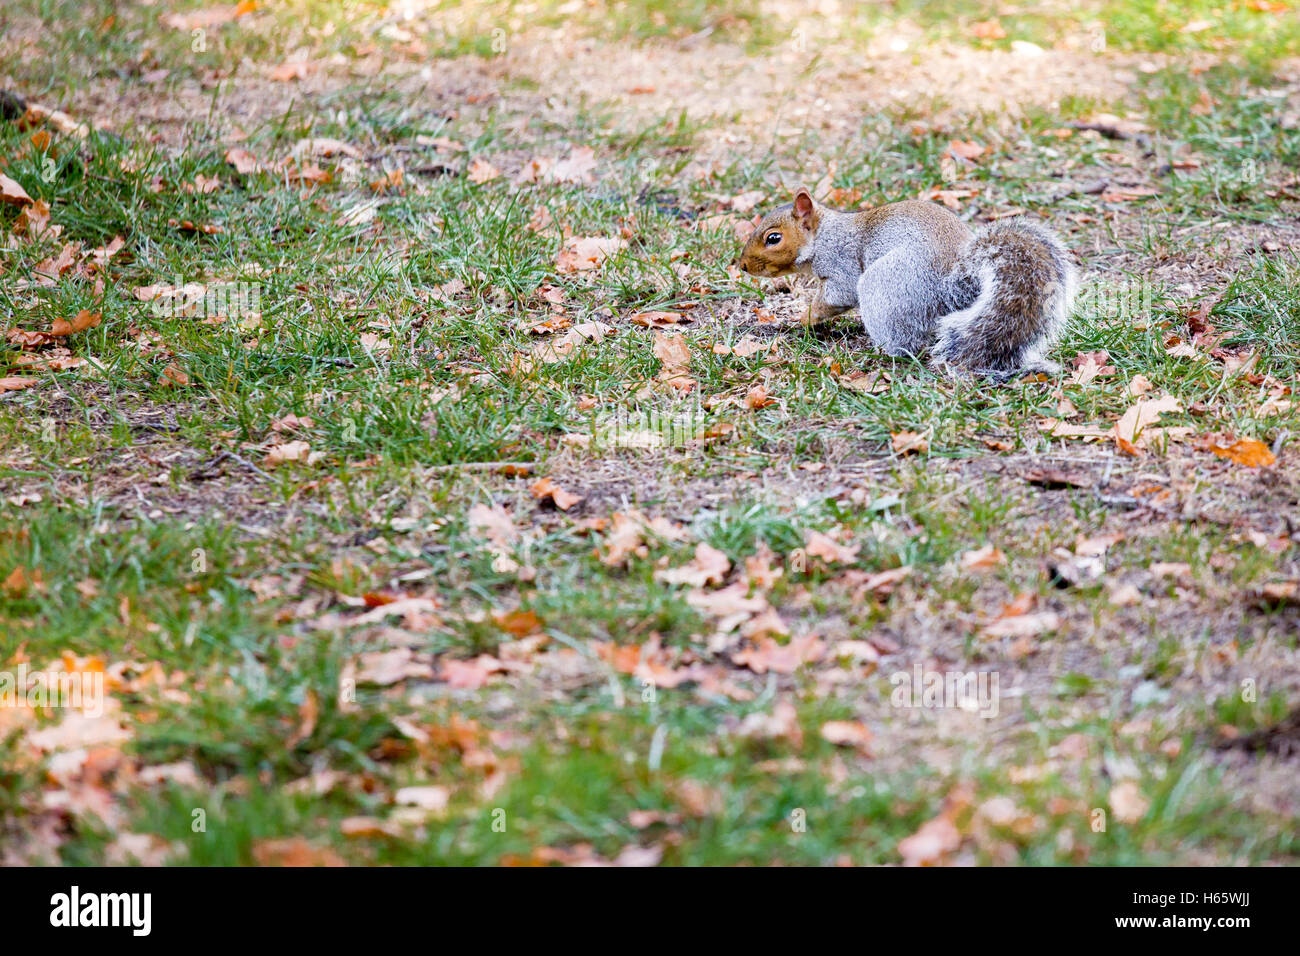 A red grey/gray squirrel in a park during autumn - Stock Image